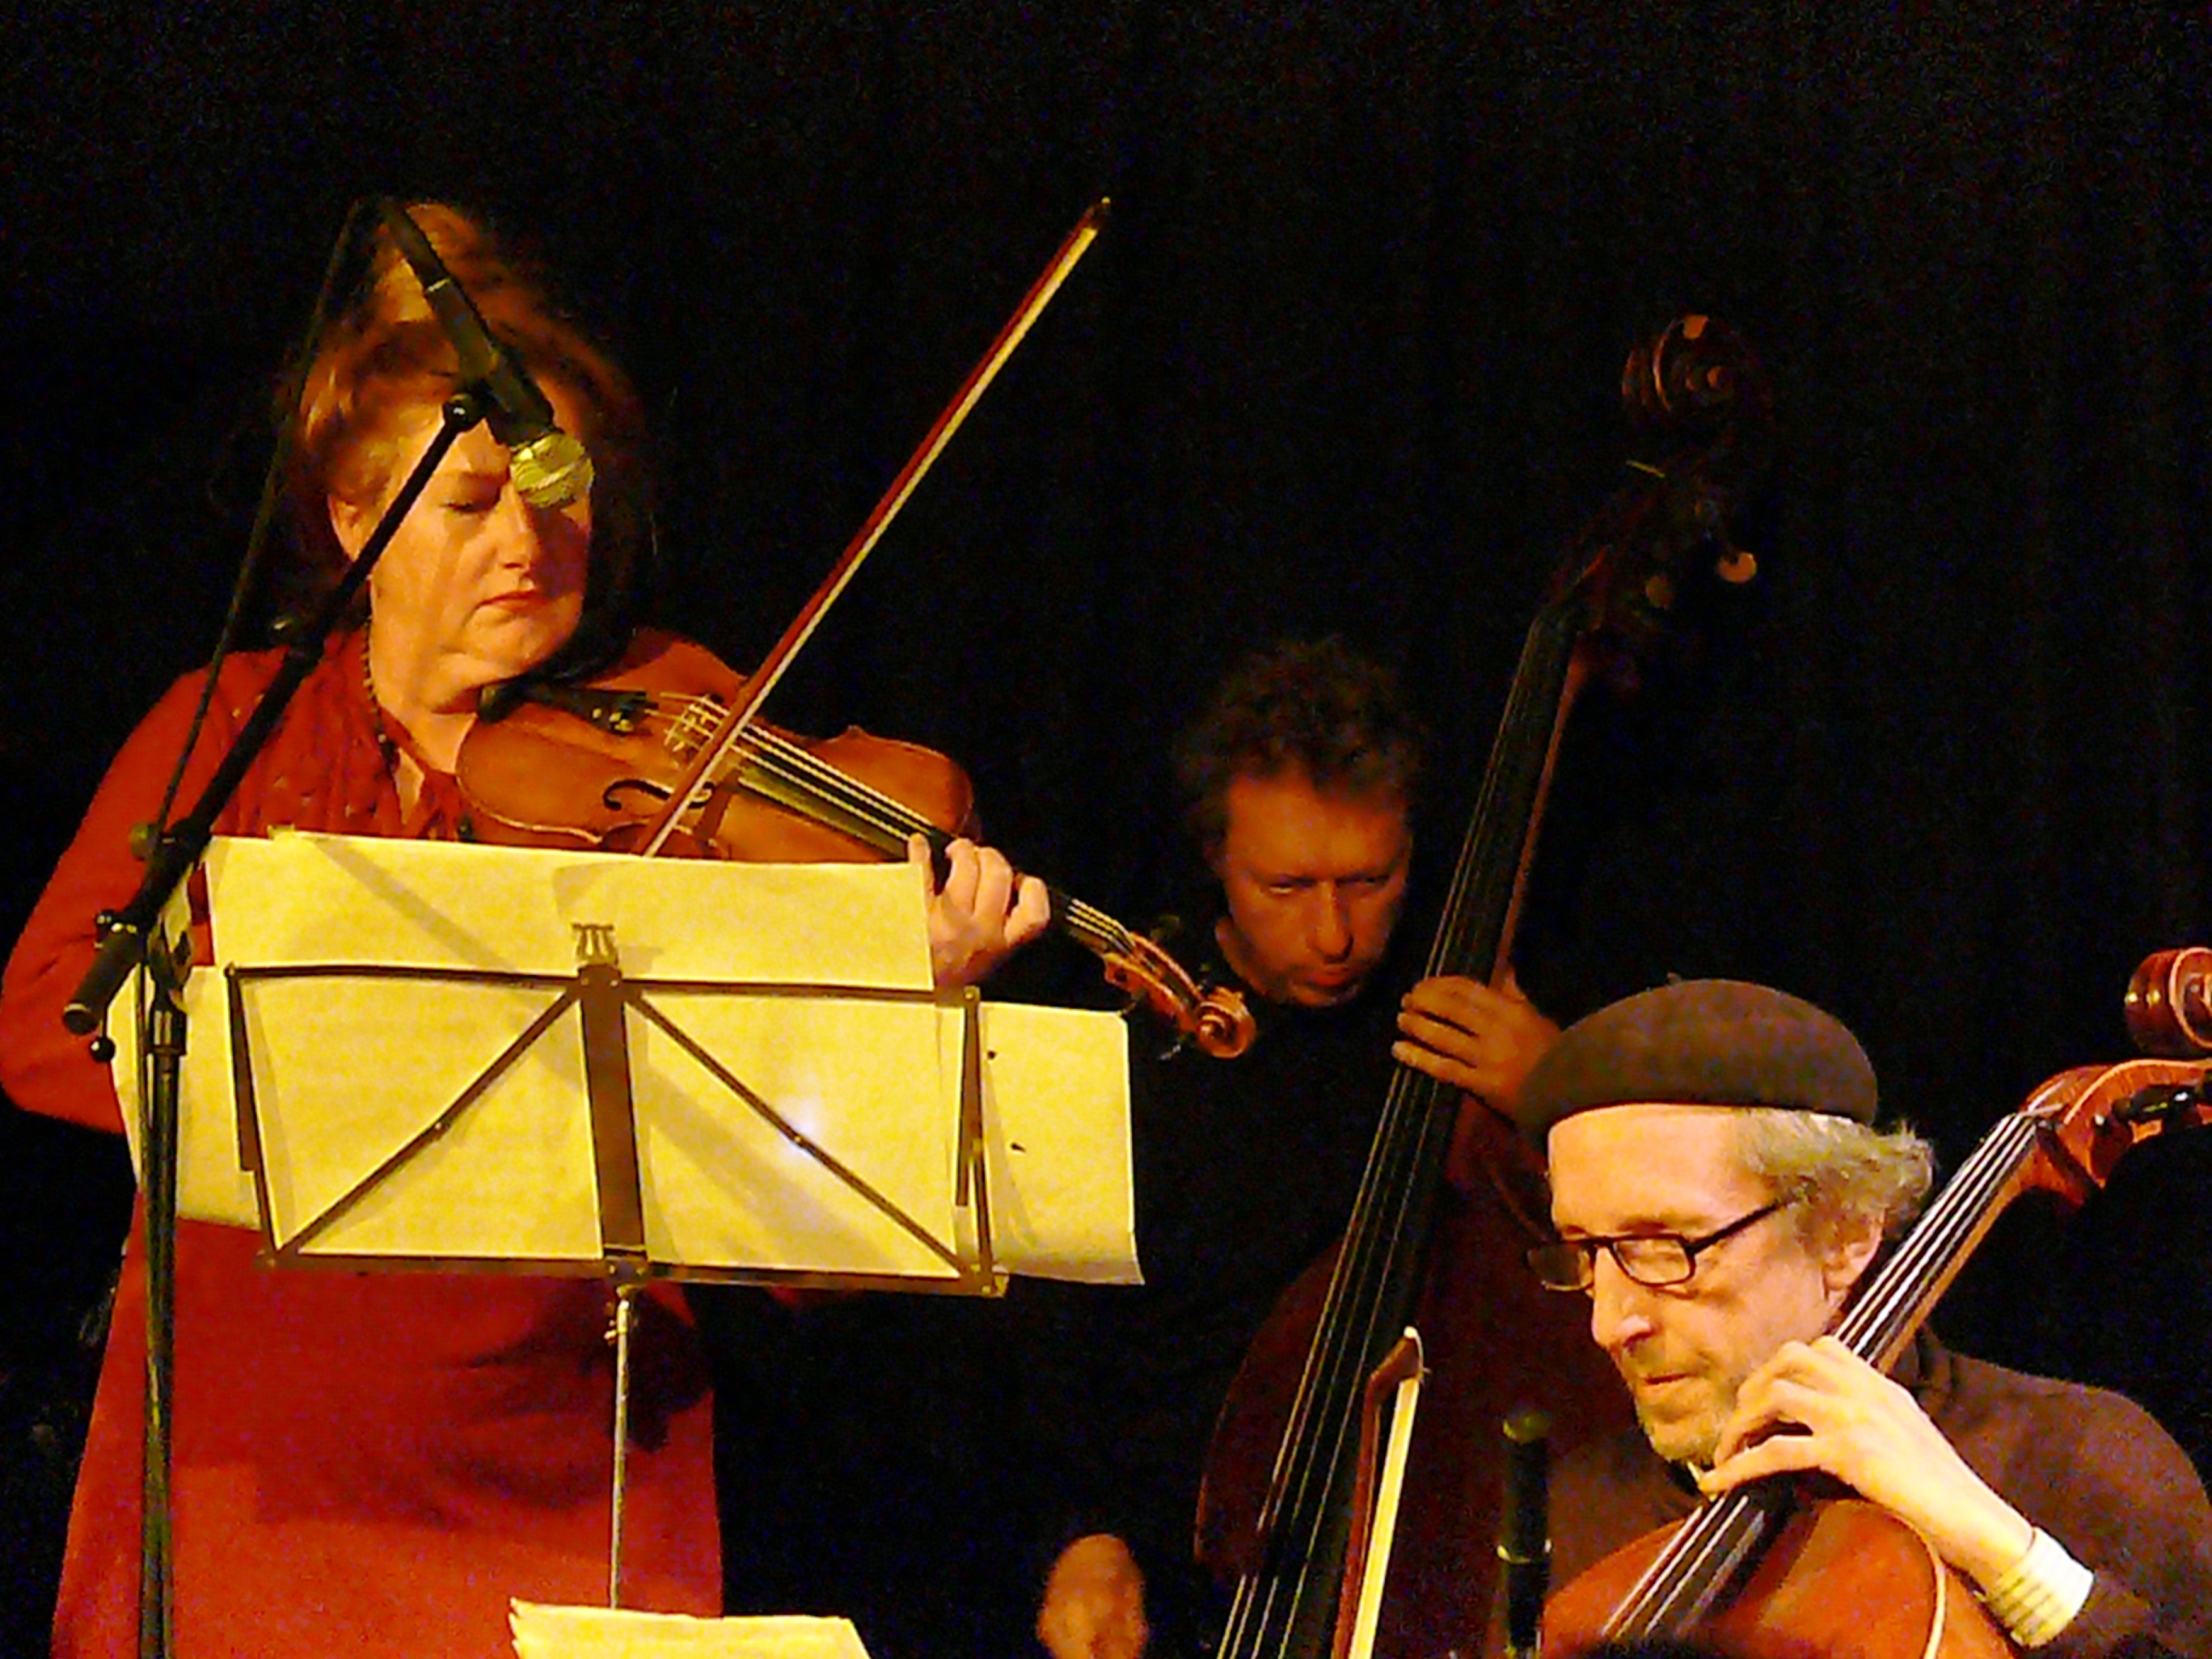 Mary oliver, ernst glerum and tristan honsinger at the vortex, london in february 2013